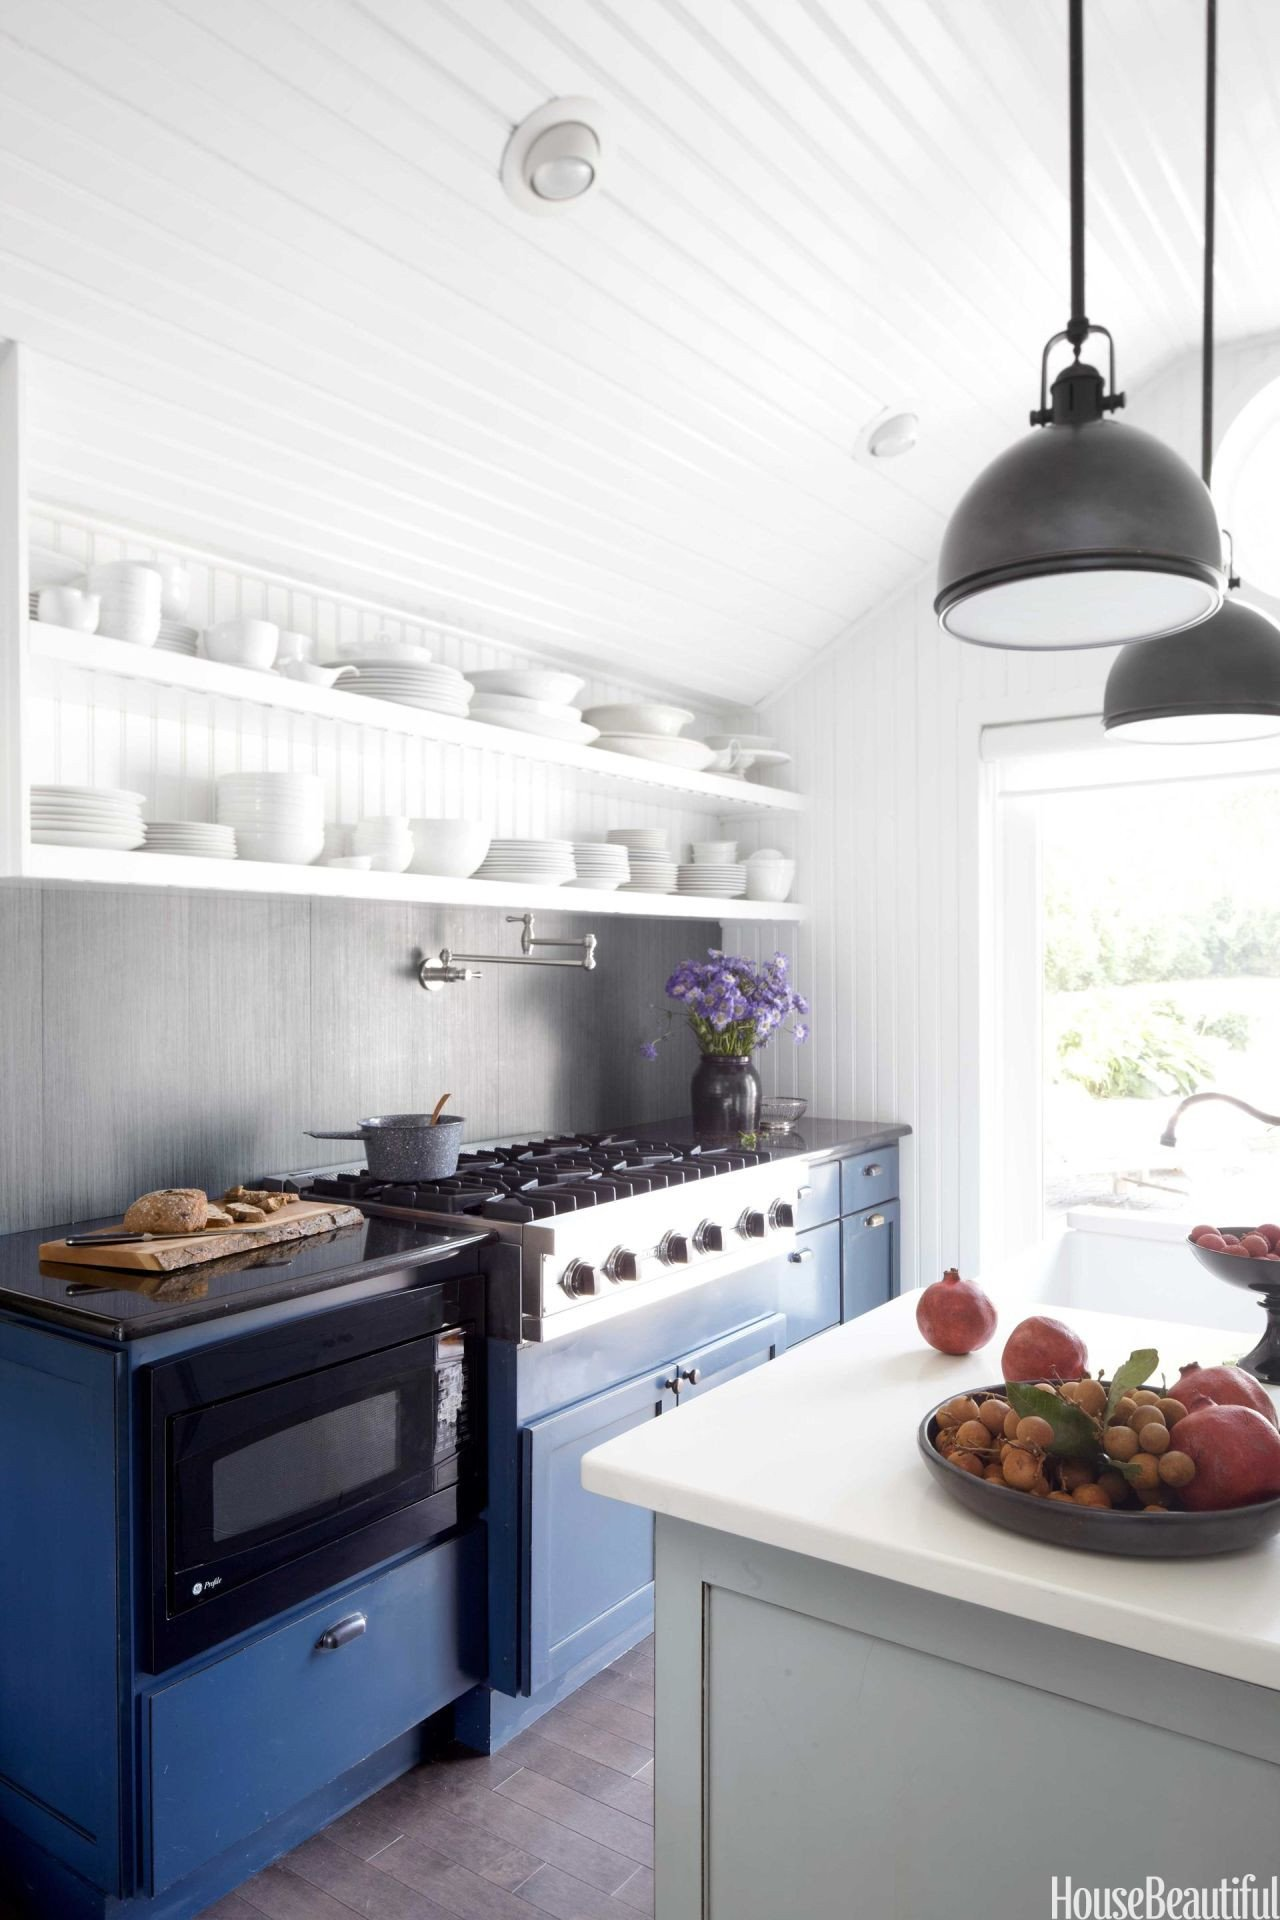 Blue and White Kitchen Decor Unique Blue and White Kitchen Decor Farmhouse Kitchen Design Ideas